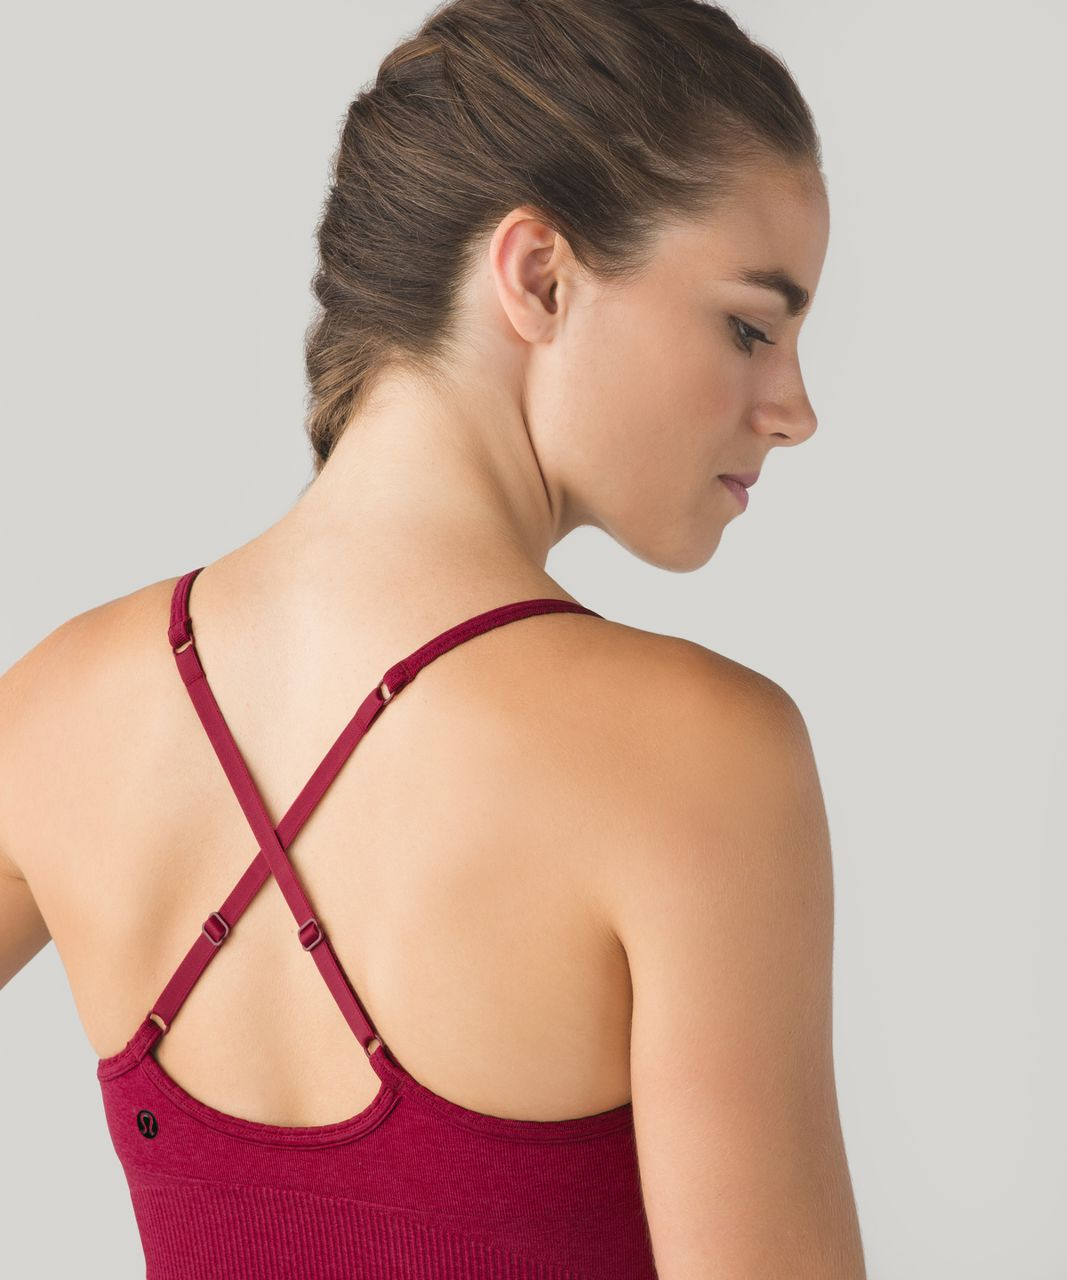 Lululemon Ebb To Street Bra - Heathered Bumble Berry